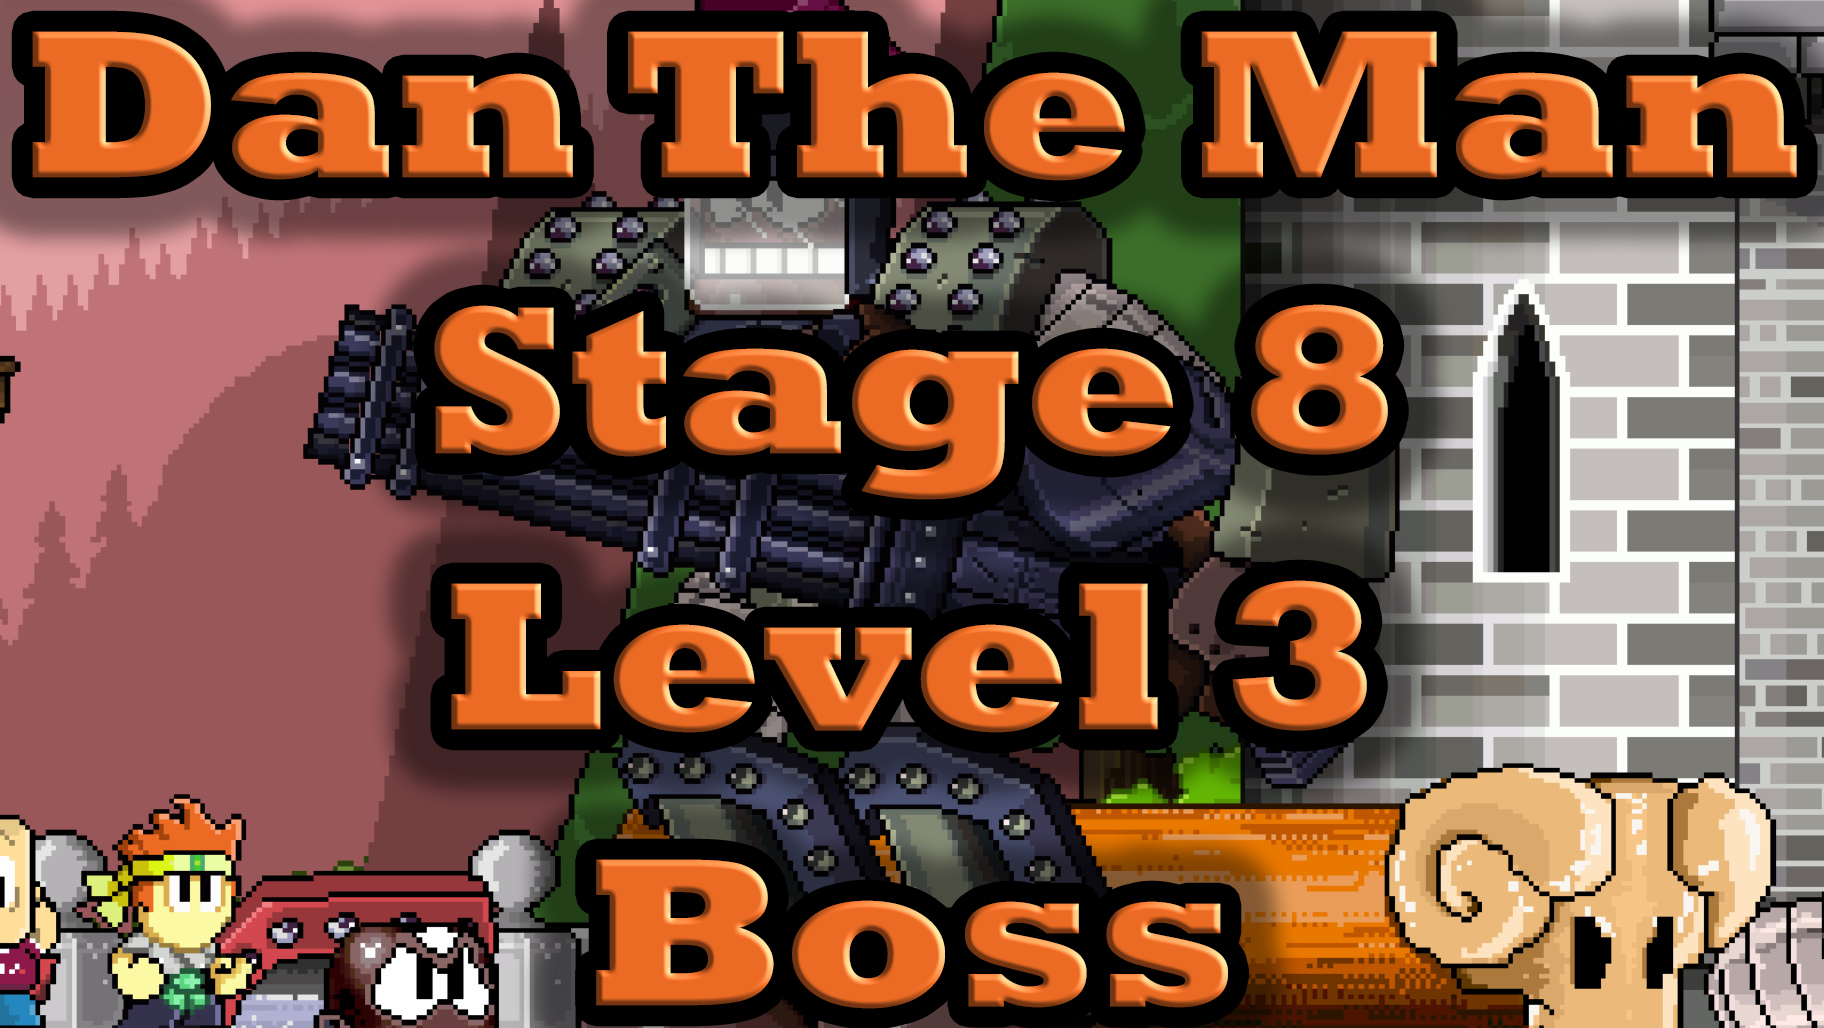 Dan The Man Game (Stage 8-1-3 Boss) (Android games)